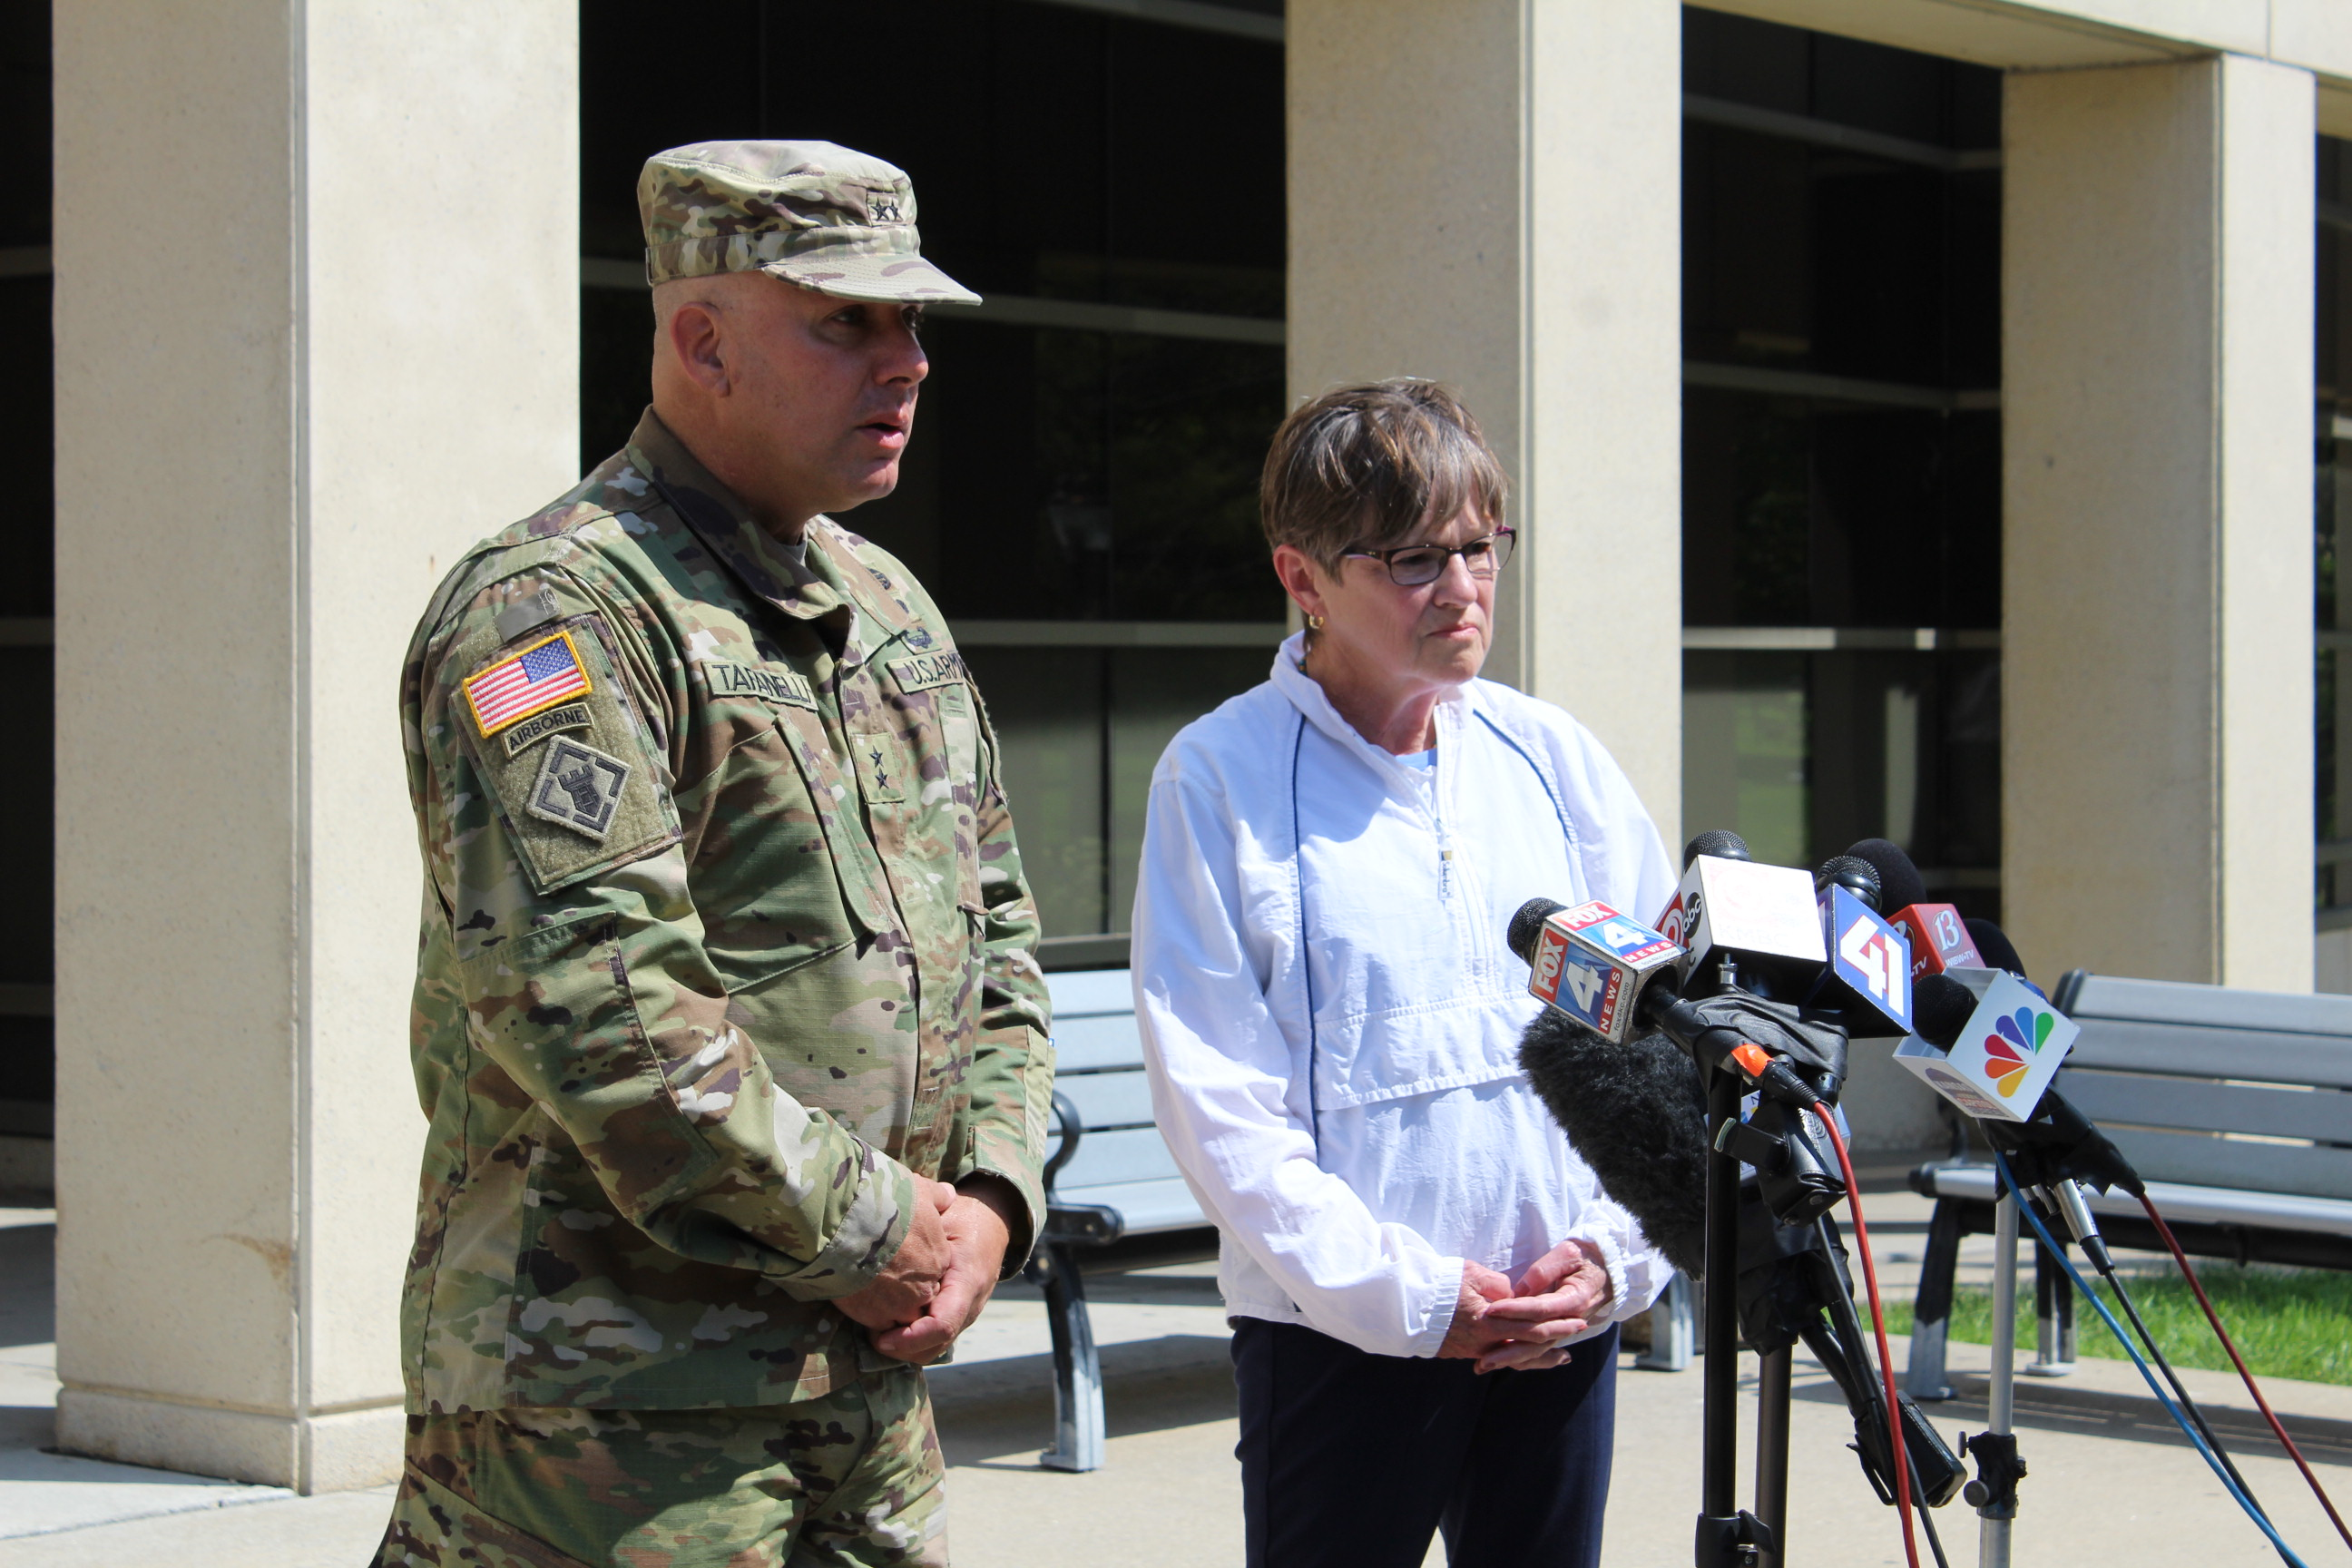 State Emergency Management Director, Major General Lee Tafanelli and Kansas Governor Laura Kelly speak to reporters after taking an aerial tour of Tuesday's tornado damage in northeast Kansas. (Photo by J. Schafer)